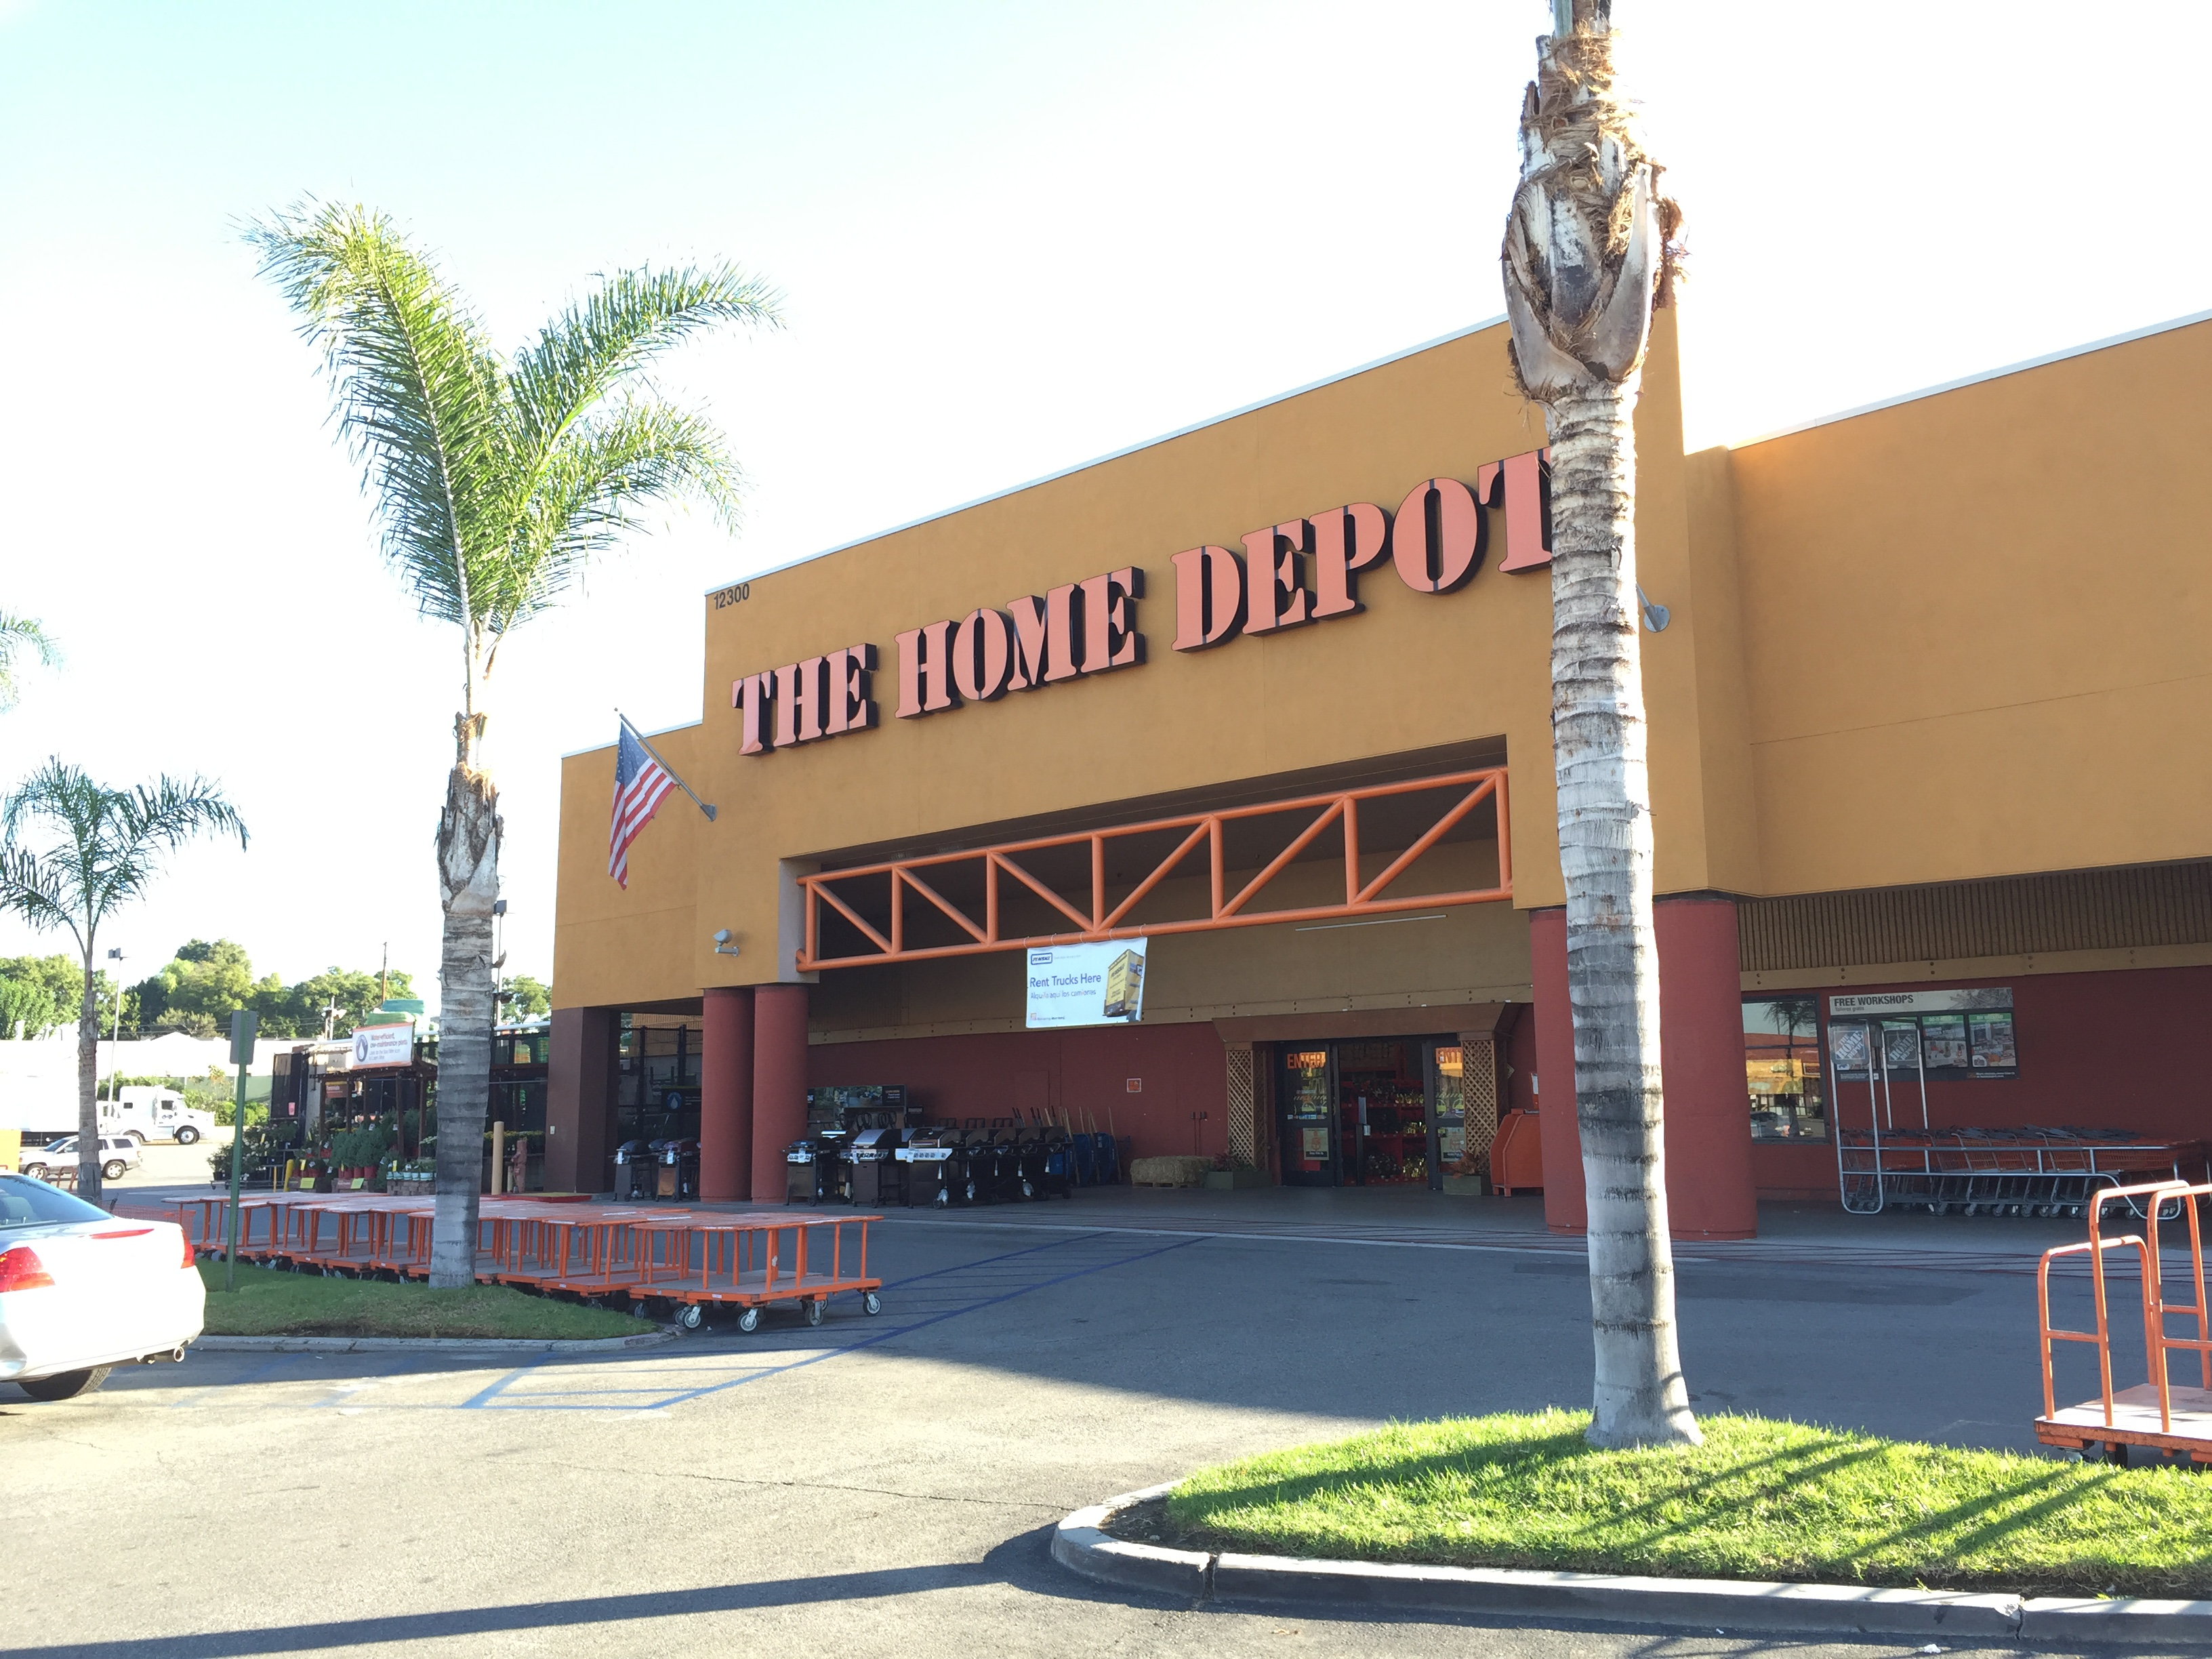 Home Depot Palm Trees The Home Depot 12300 La Mirada Blvd La Mirada Ca Hardware Stores